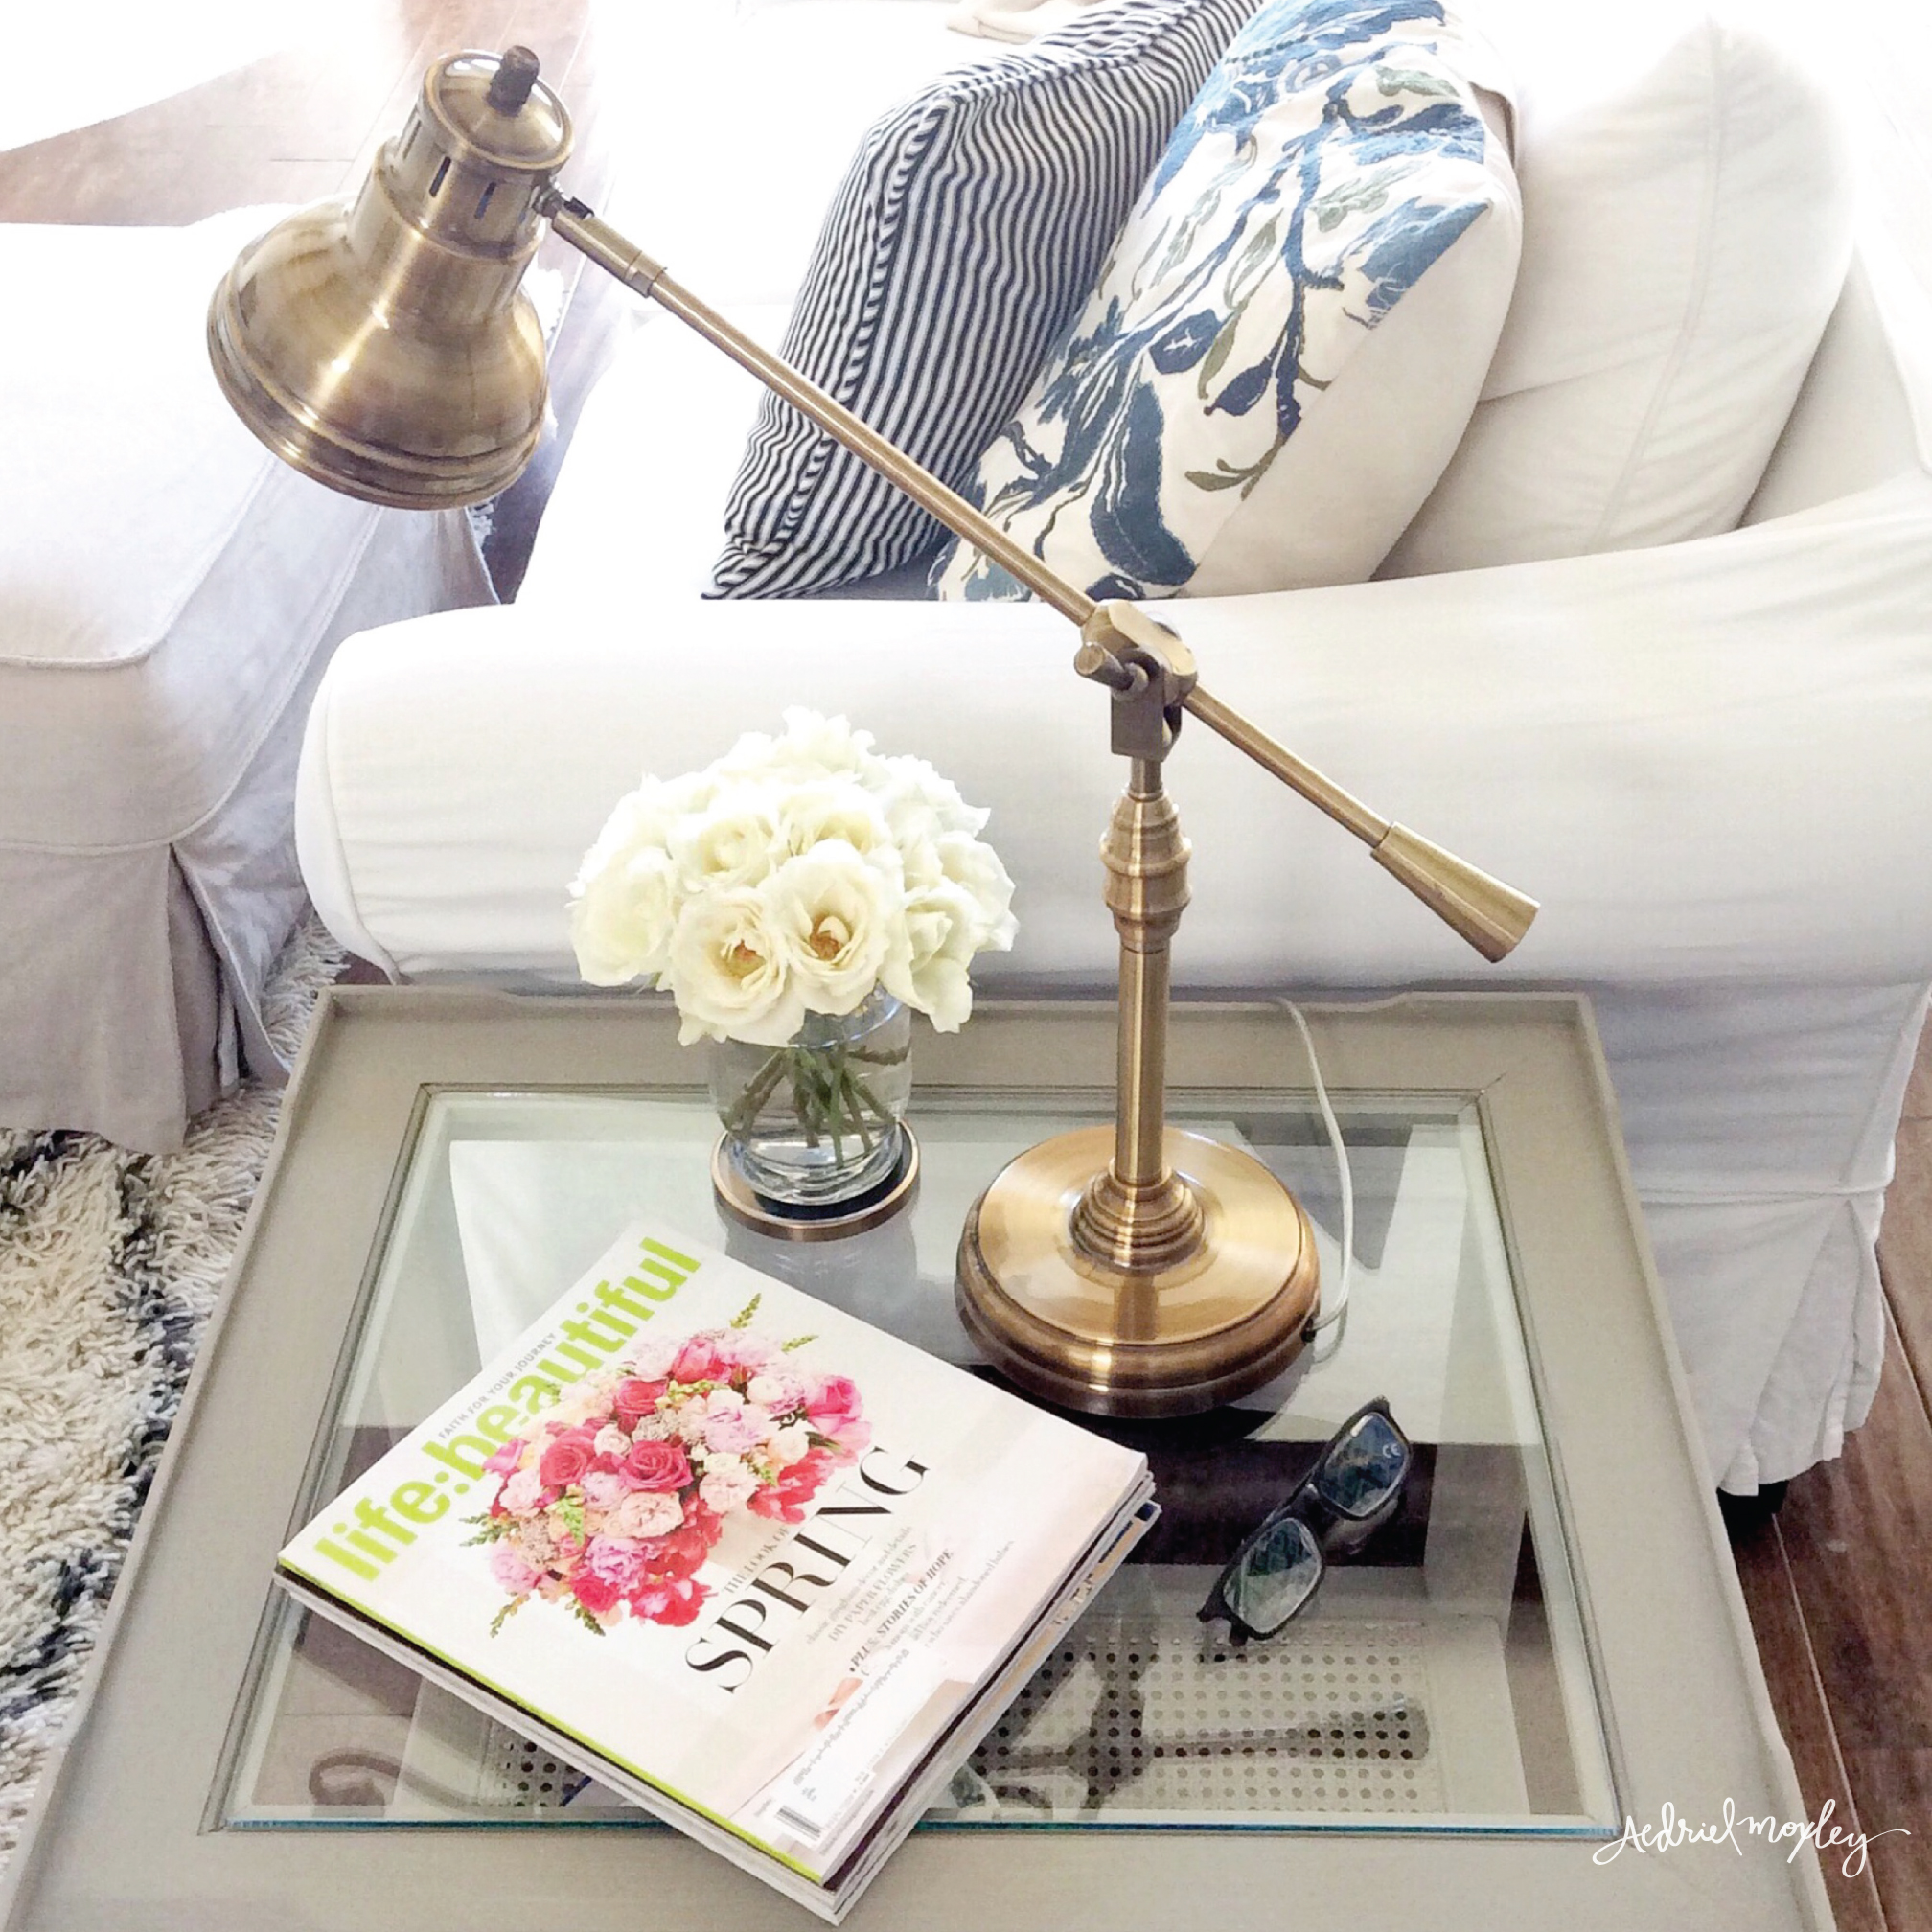 Before & After Aedriel Moxley House Tour : Living Room Details Annie Sloan Chalk Paint  French Linen